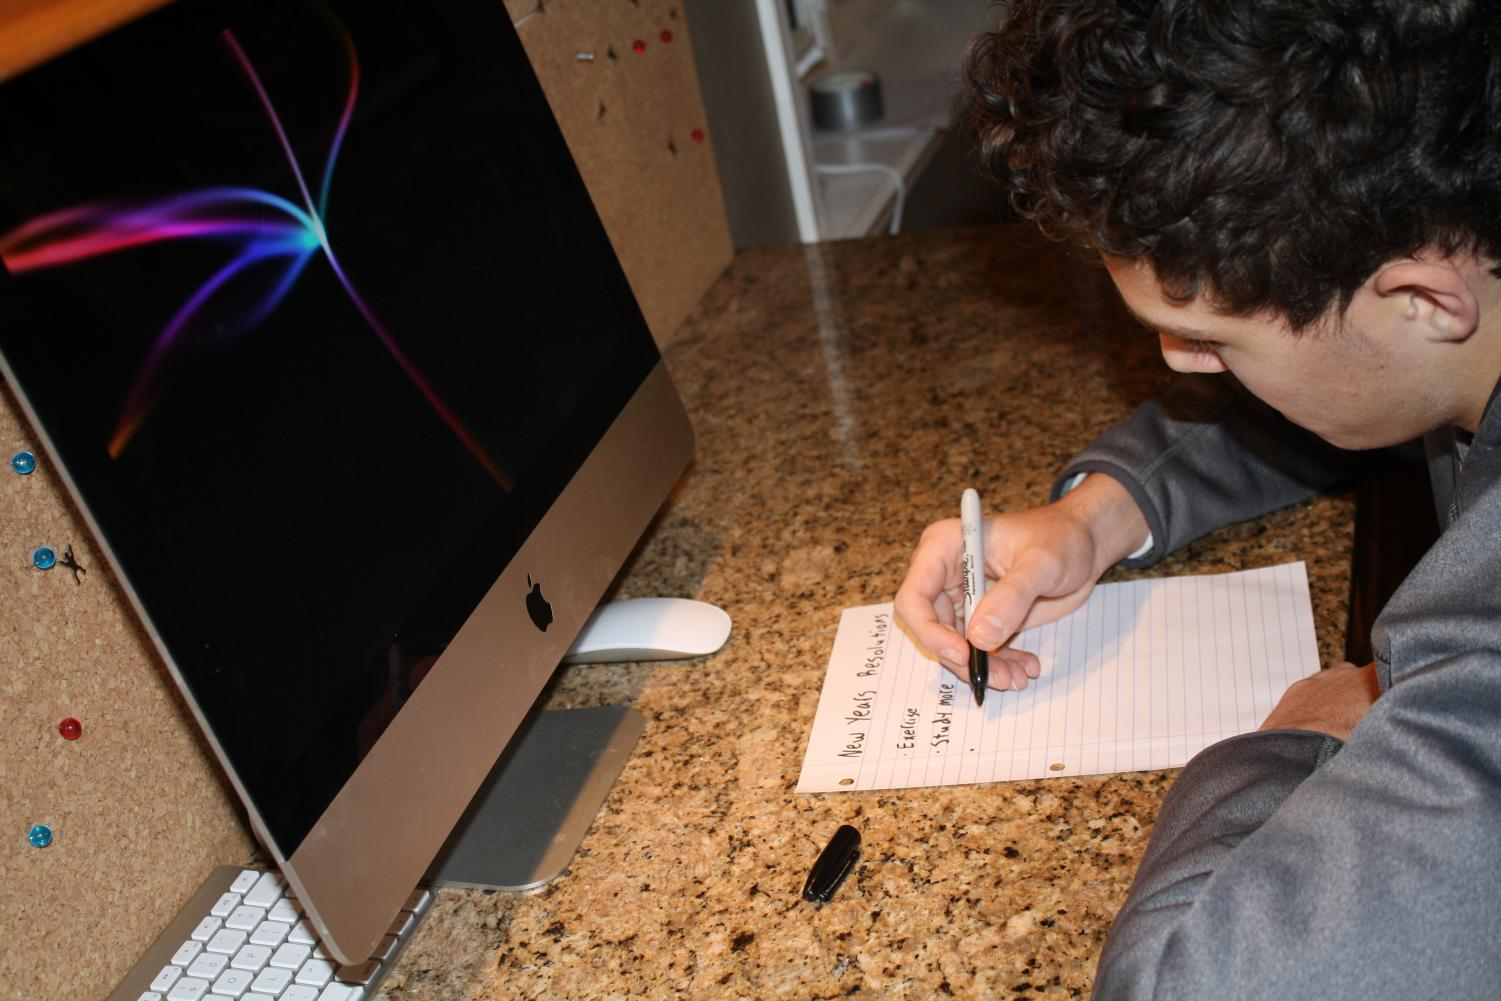 Will Rives, senior, writes out his New Year's resolutions.